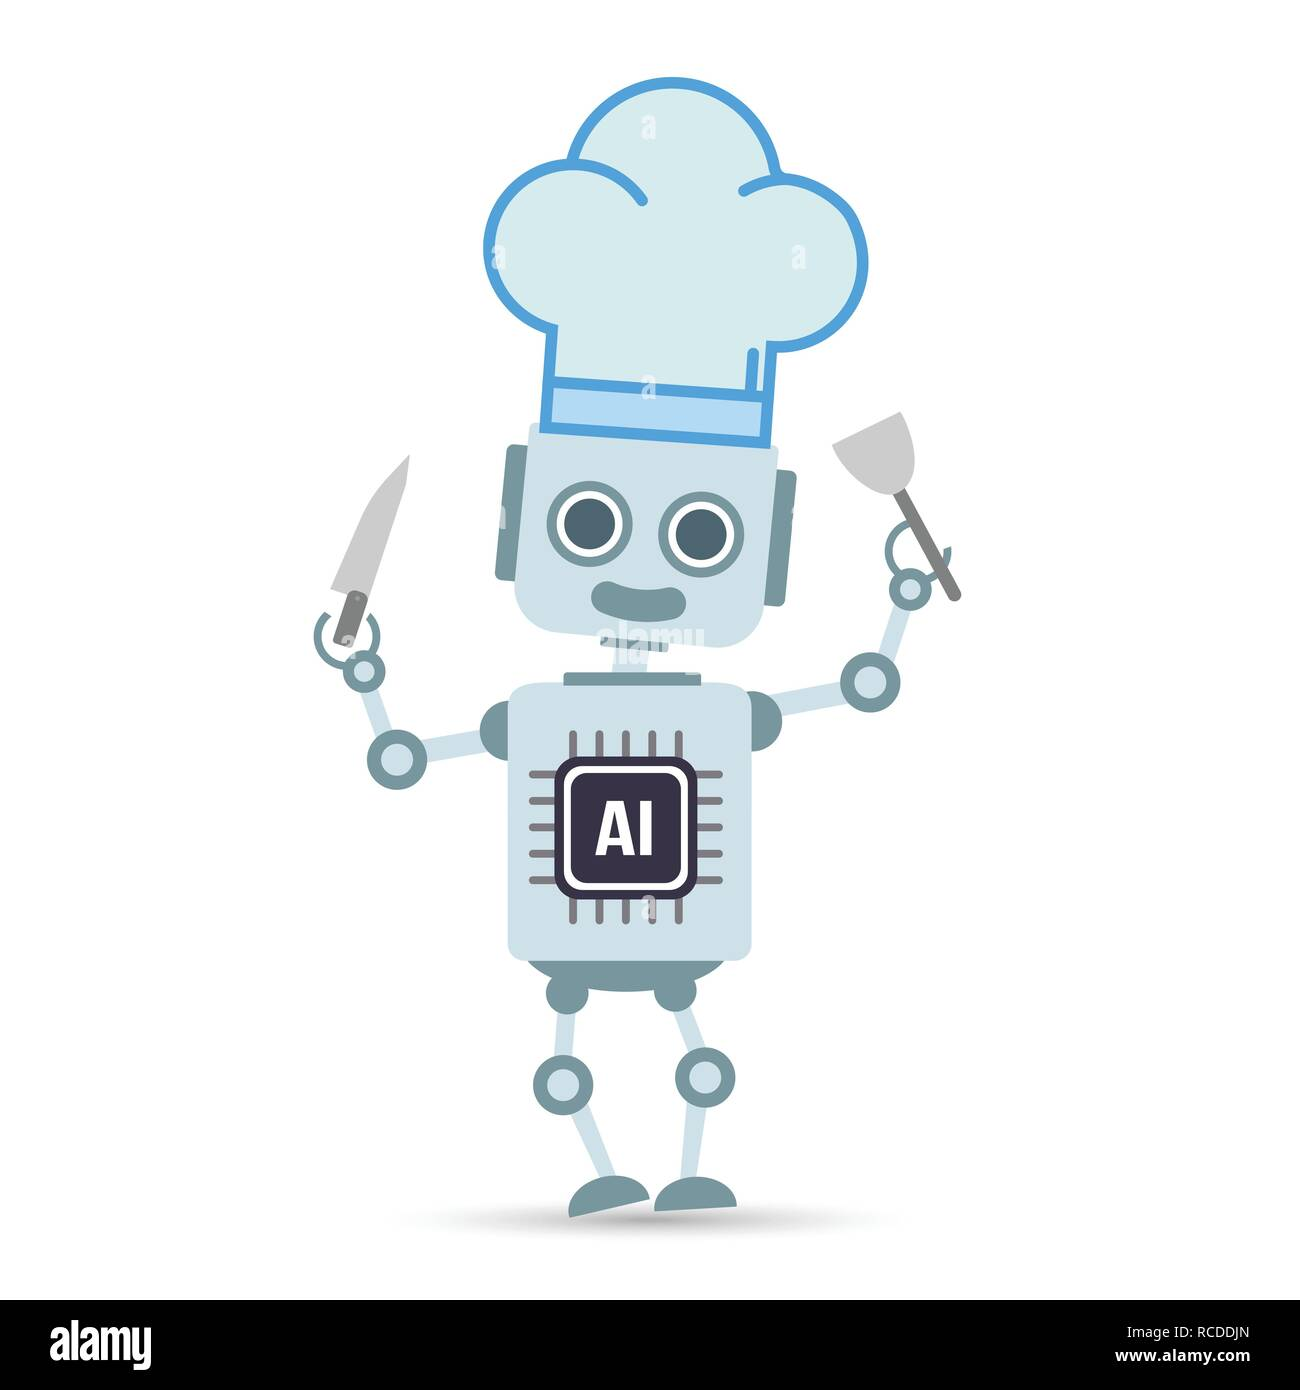 AI Artificial intelligence Technology robot is cooking food design element vector illustration eps10 Stock Vector